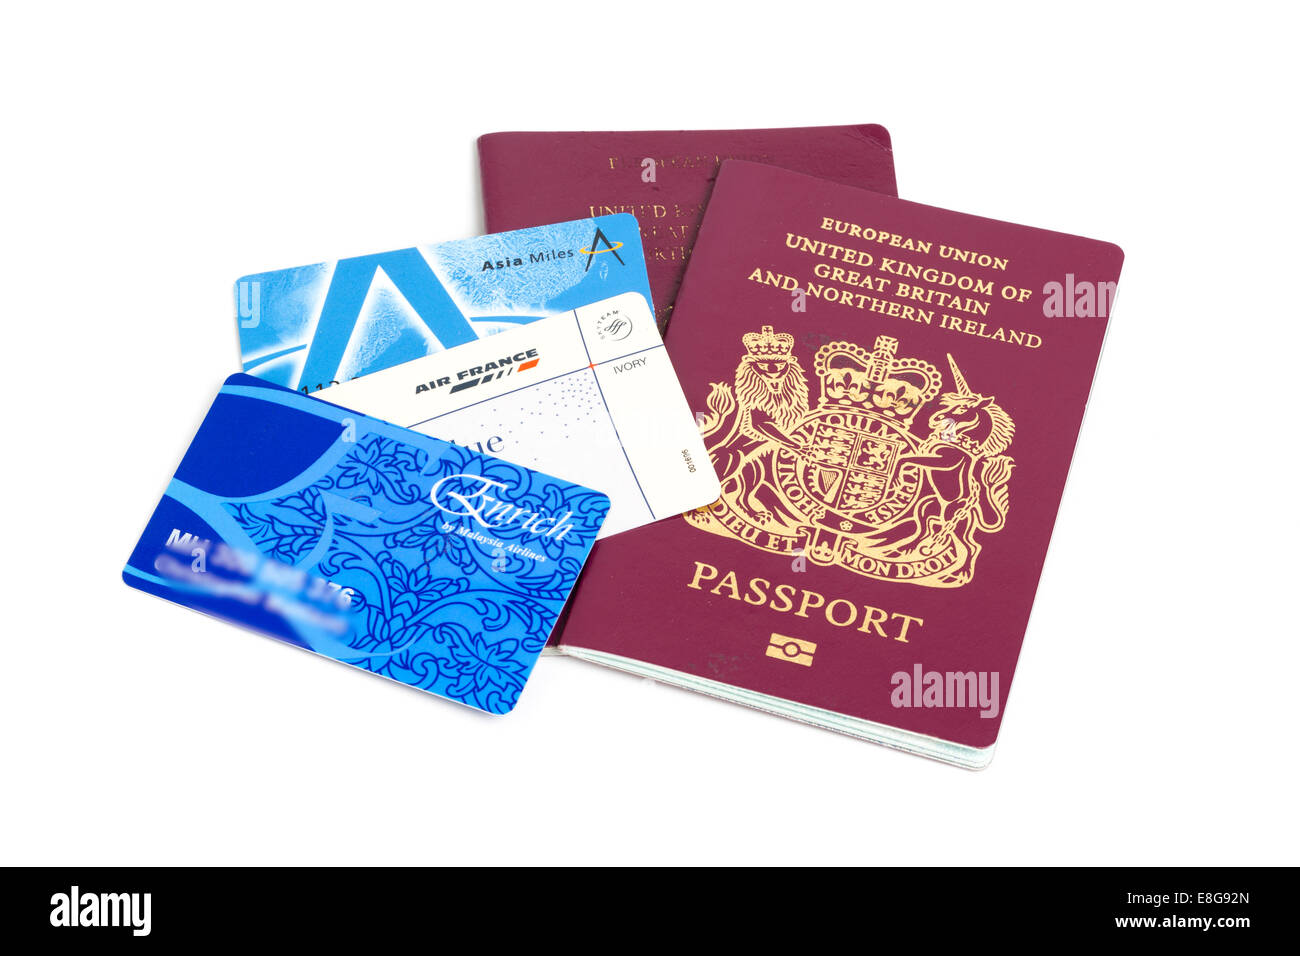 UK or British passports and frequent flier cards - Stock Image